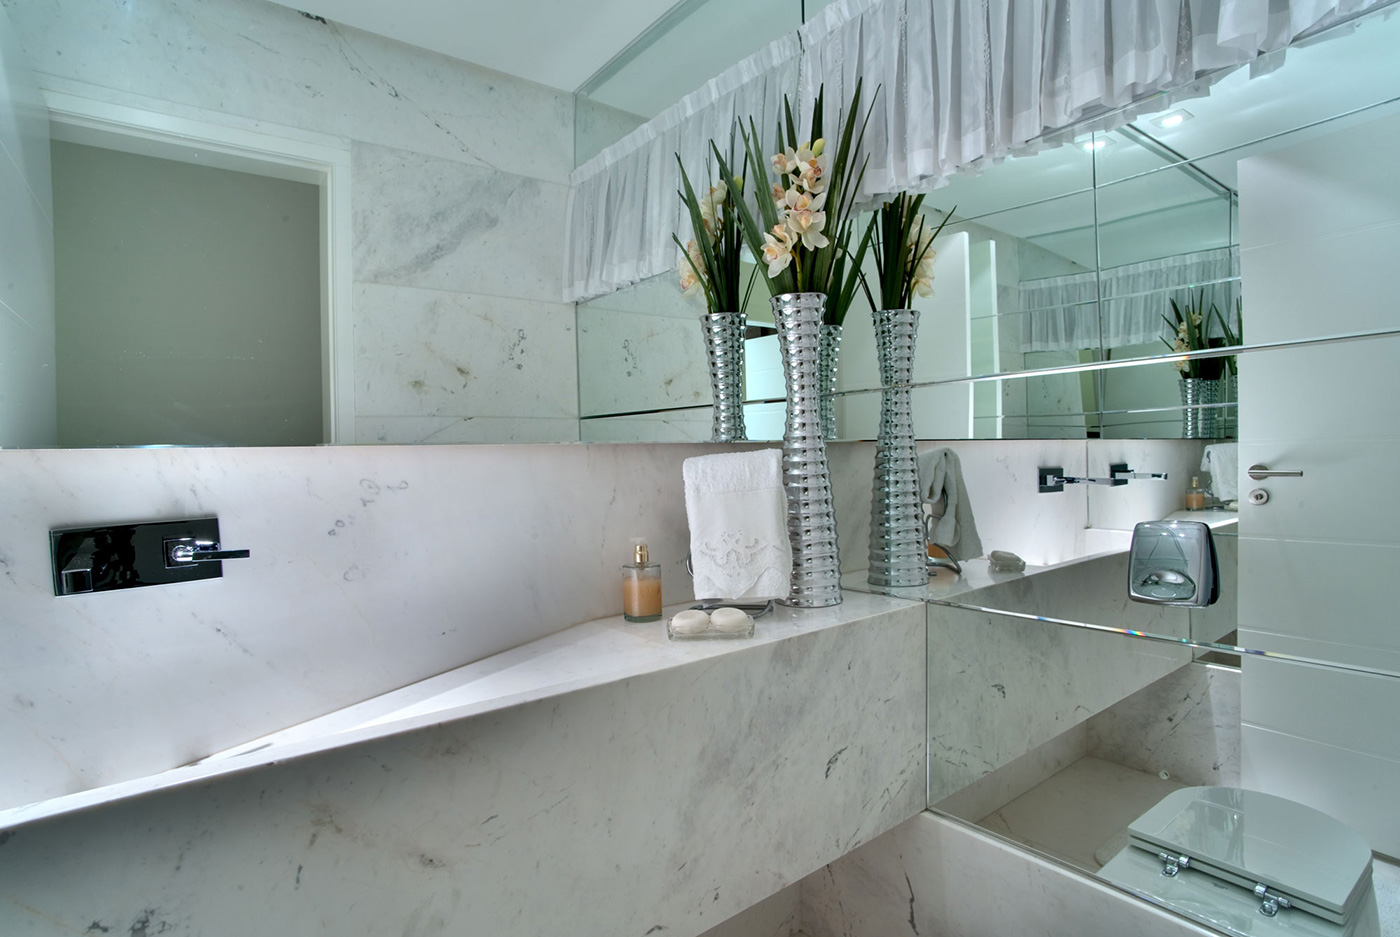 Bathroom with mirror walls